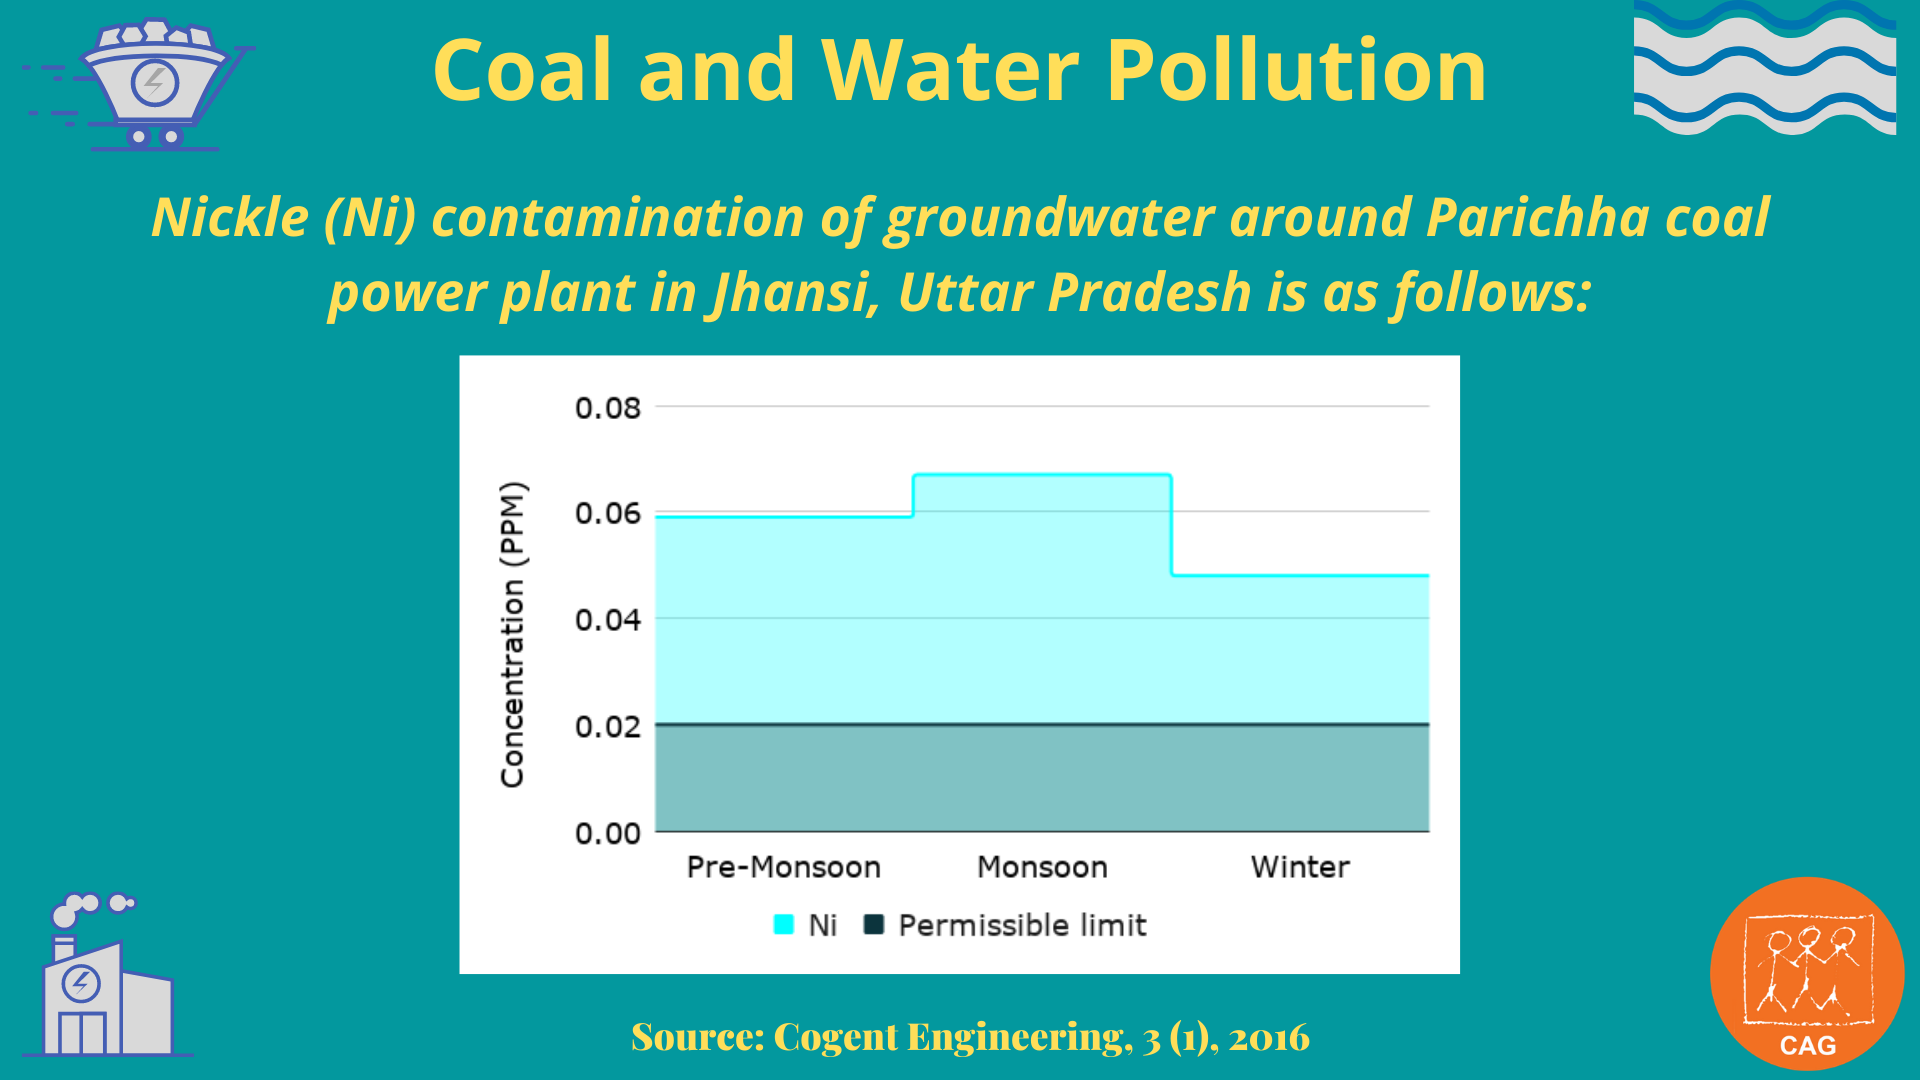 Coal and water pollution 6